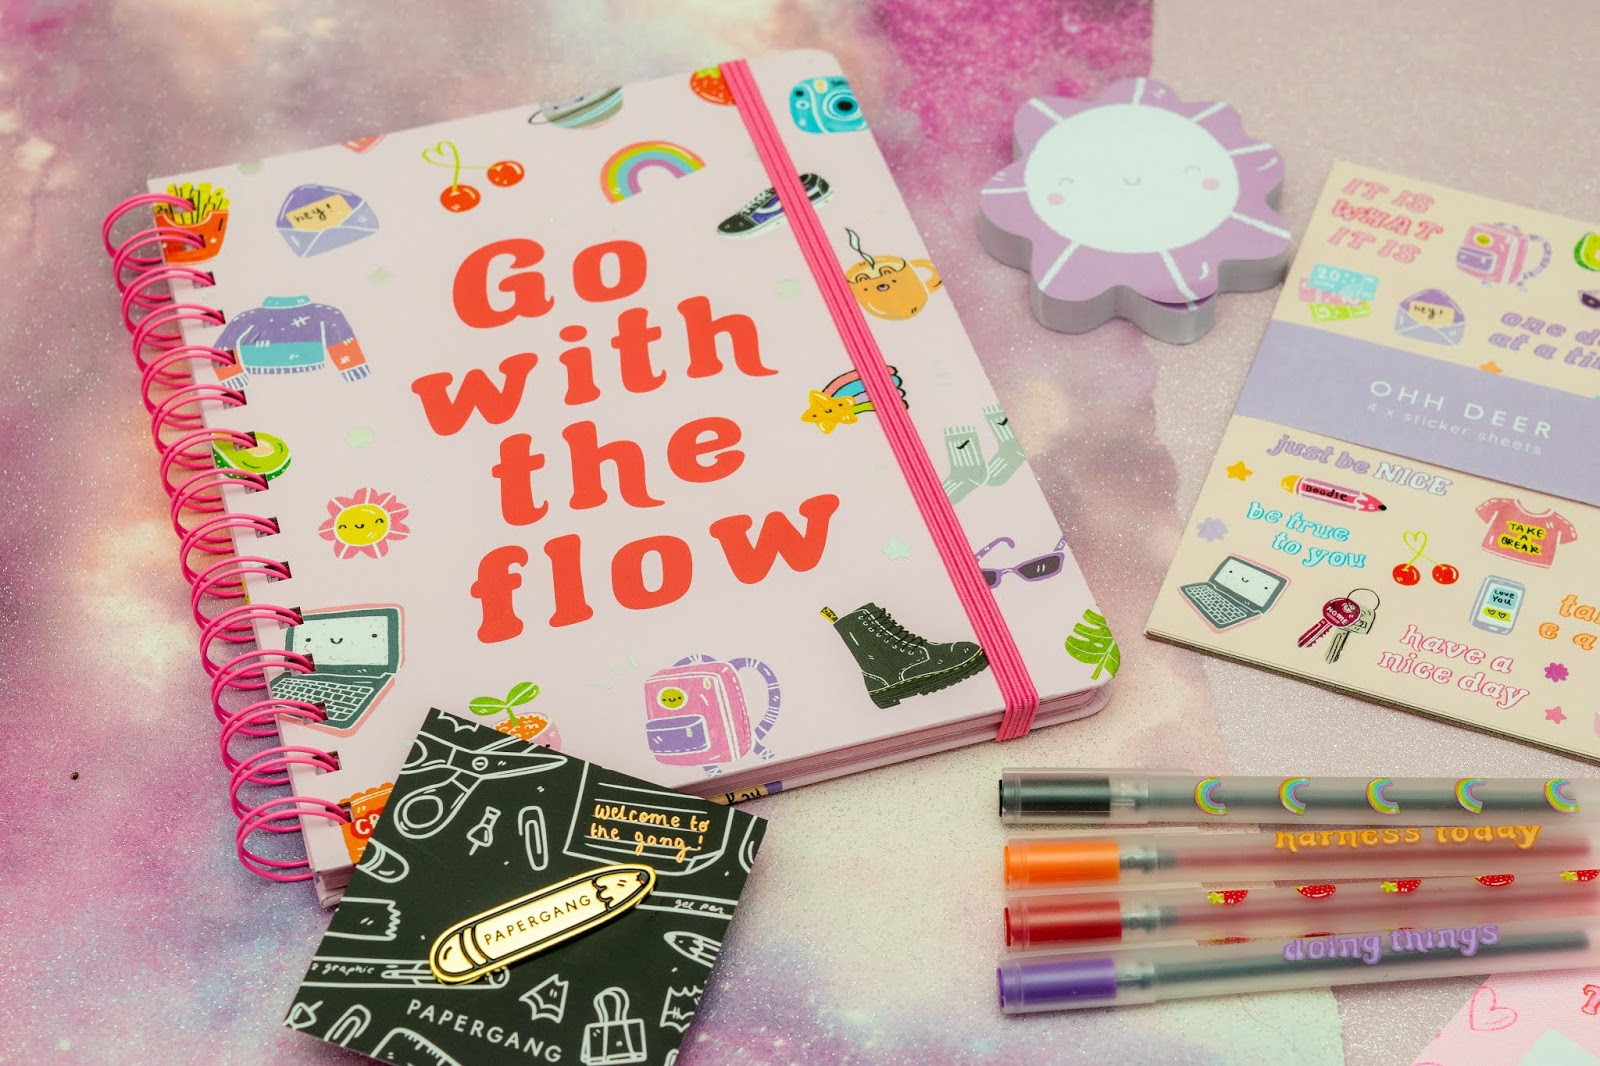 A flat lay of a spiral bound notebook with the phrase 'go with the flow' on the front, purple flower shaped post-it notes and a packet of doodle stickers.